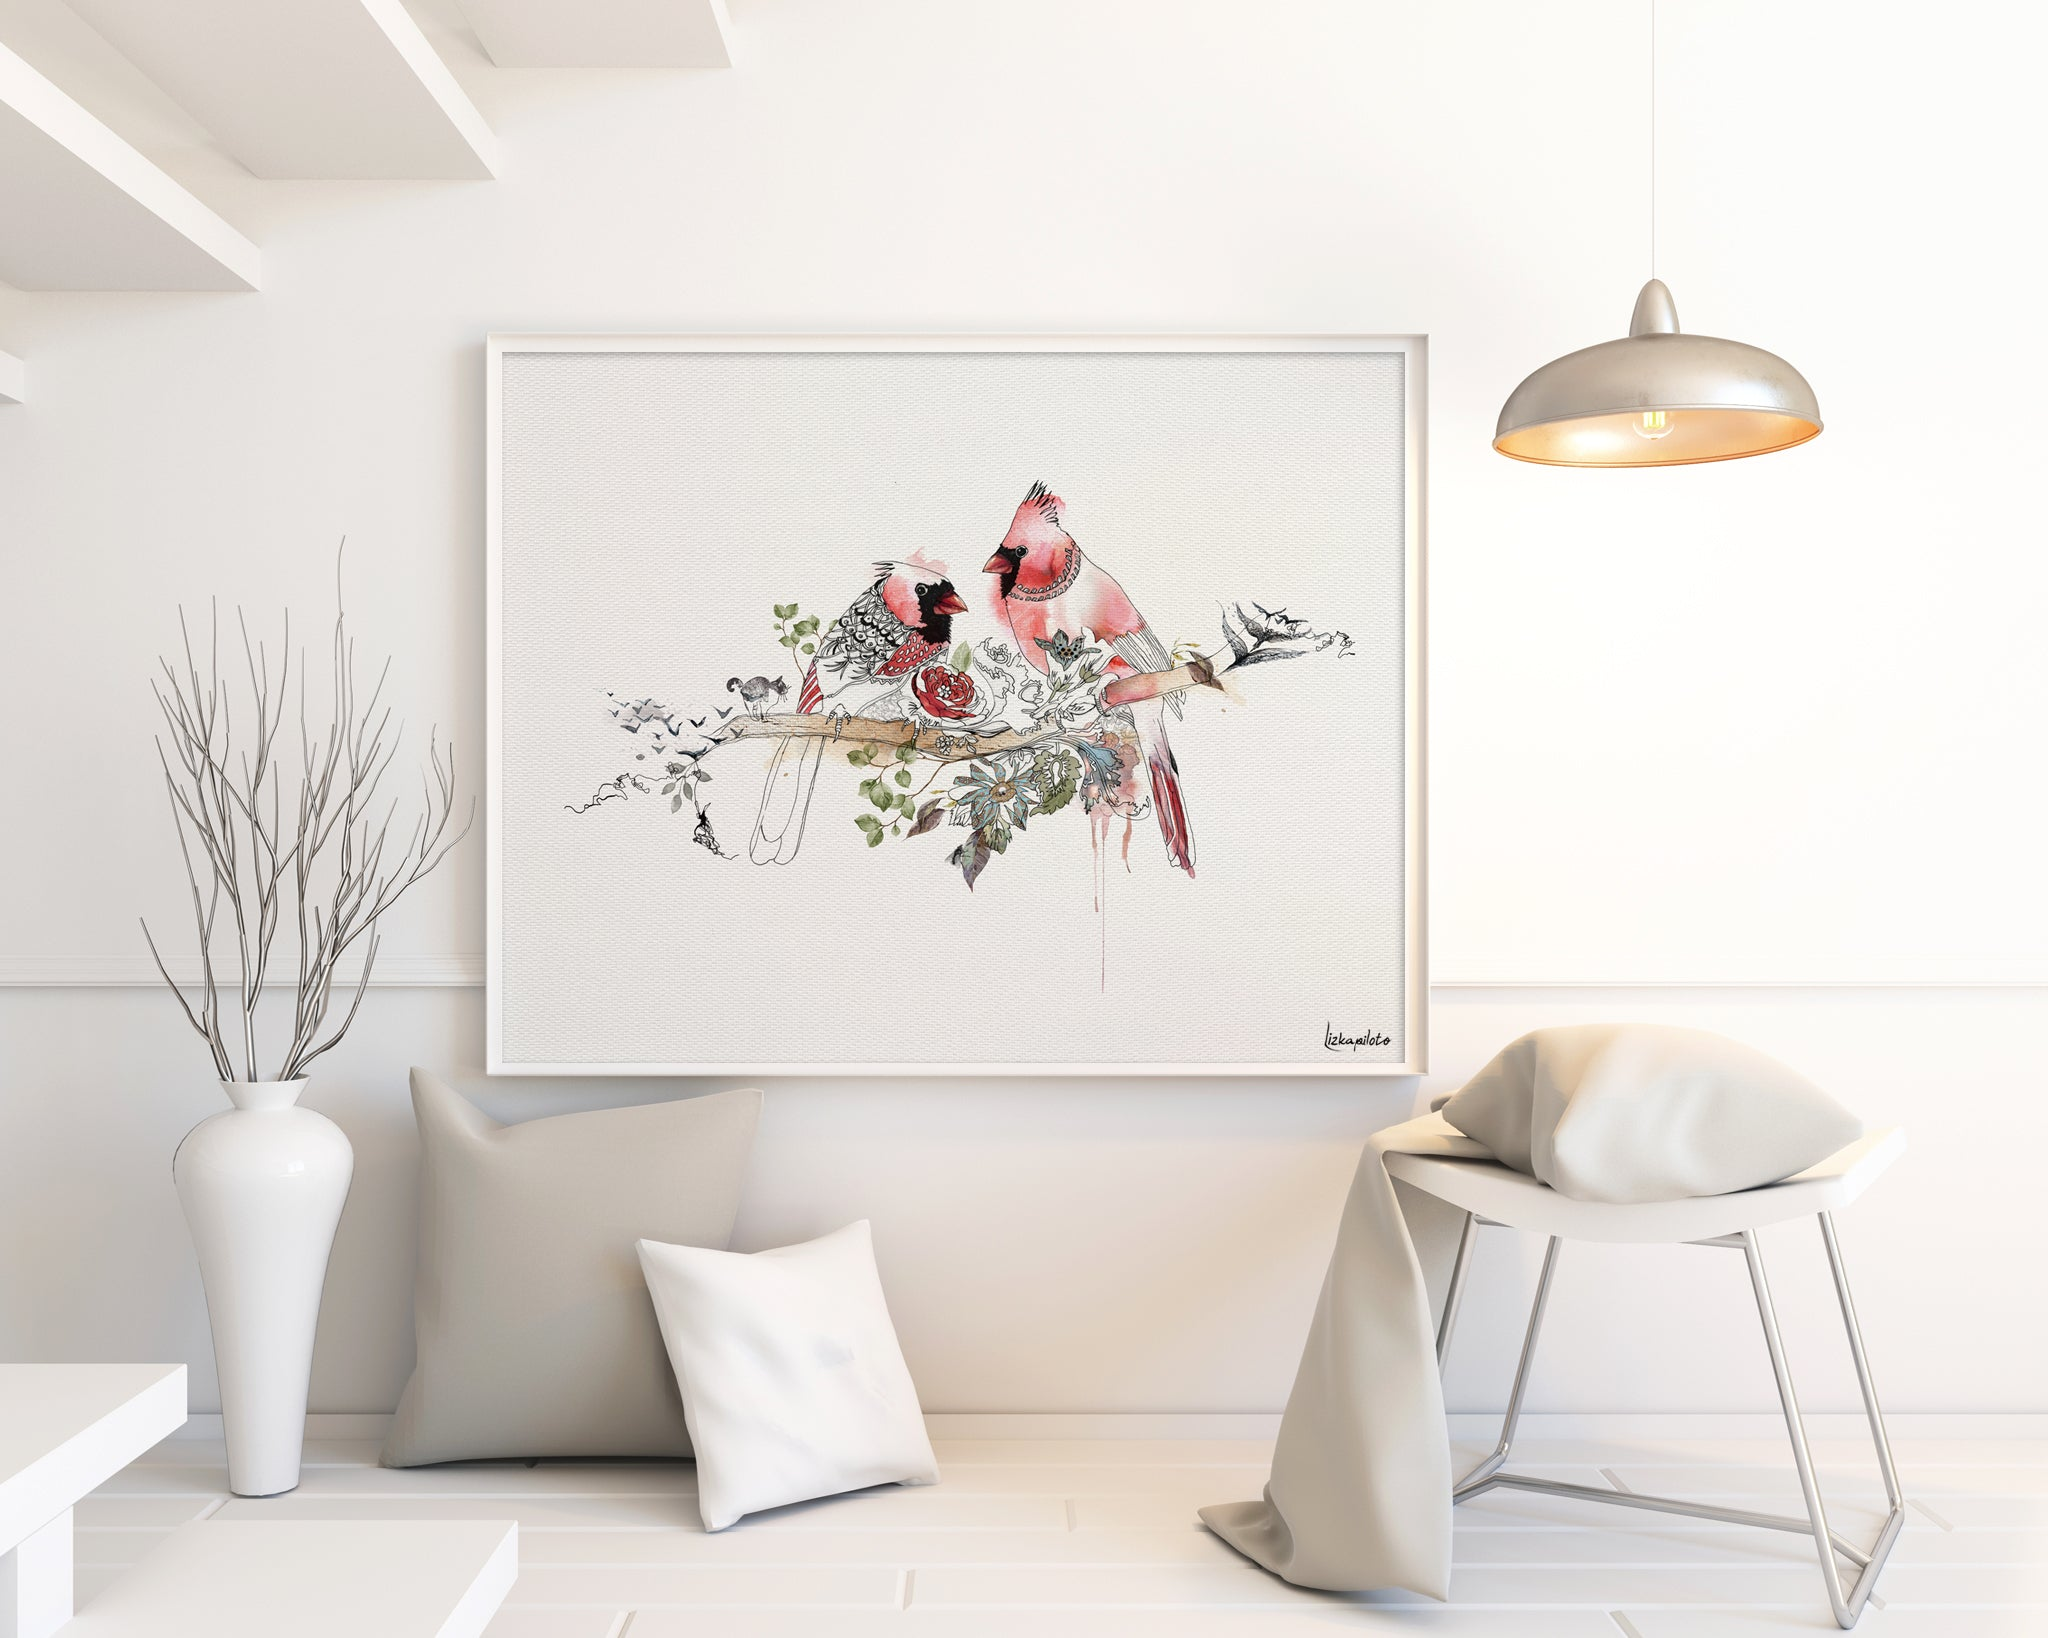 cardinal art with red colors, hanged on the wall